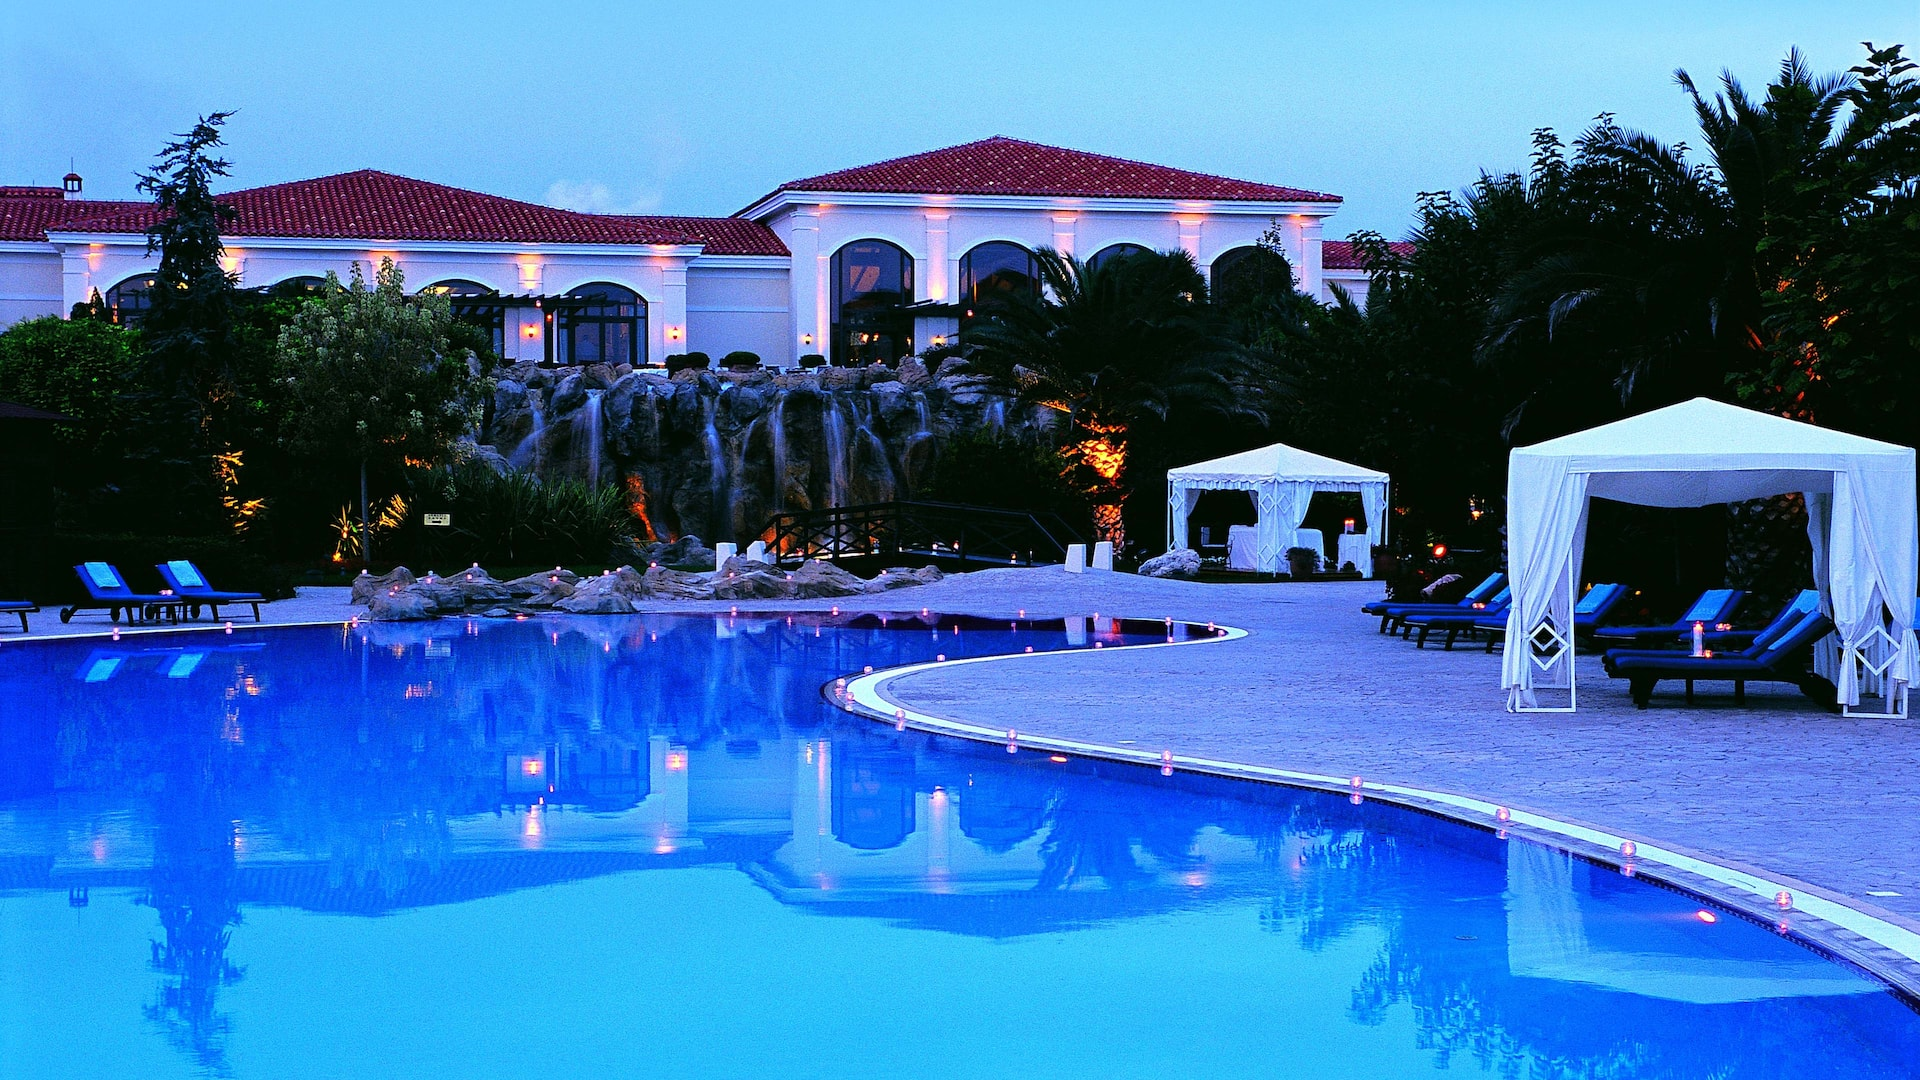 Hotel exterior and outdoor pool